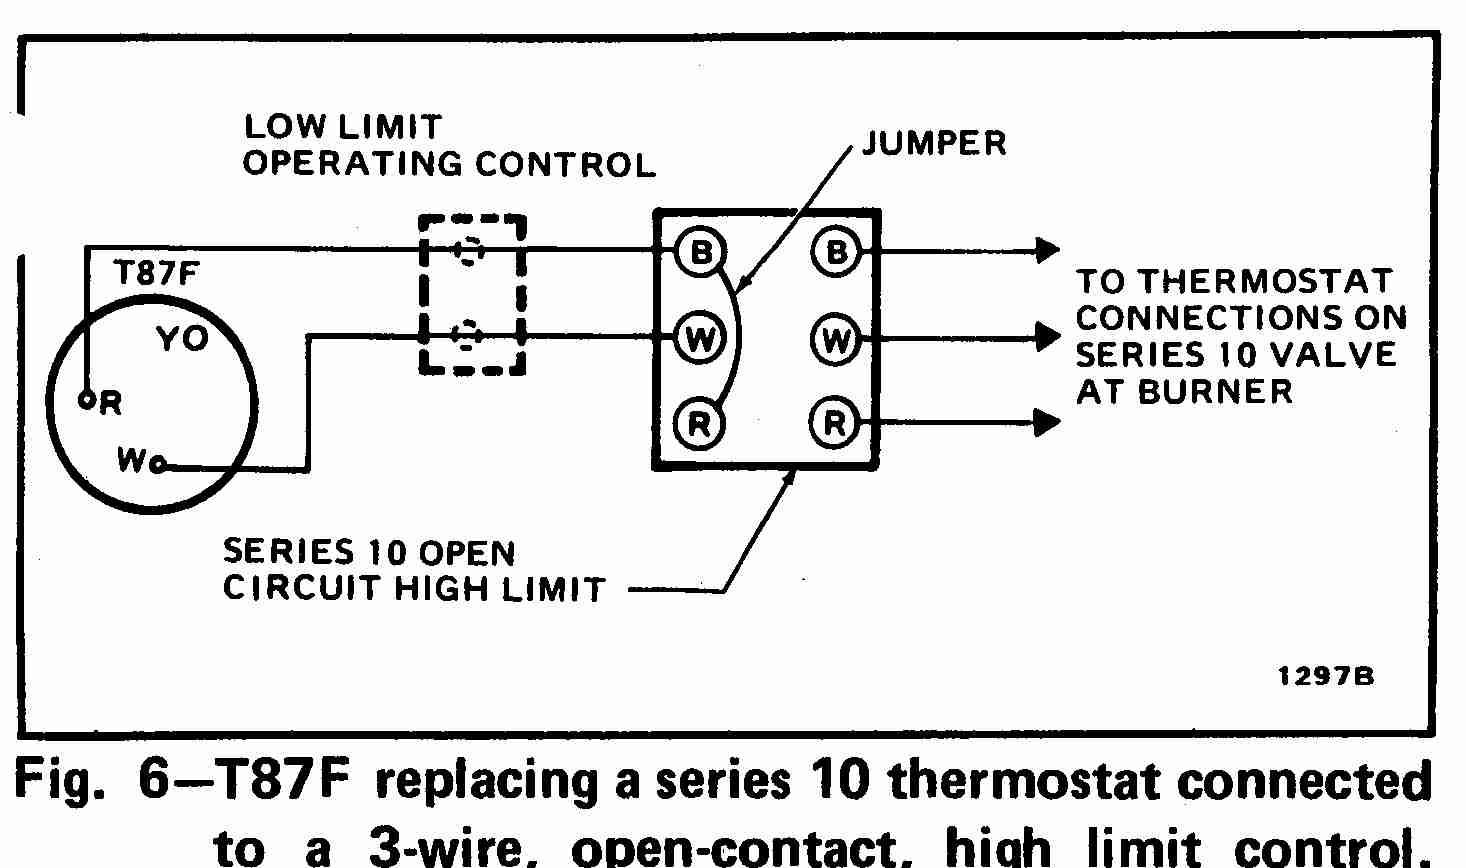 TT_T87F_0002_3WHL_DJF room thermostat wiring diagrams for hvac systems fcu wiring diagram at webbmarketing.co